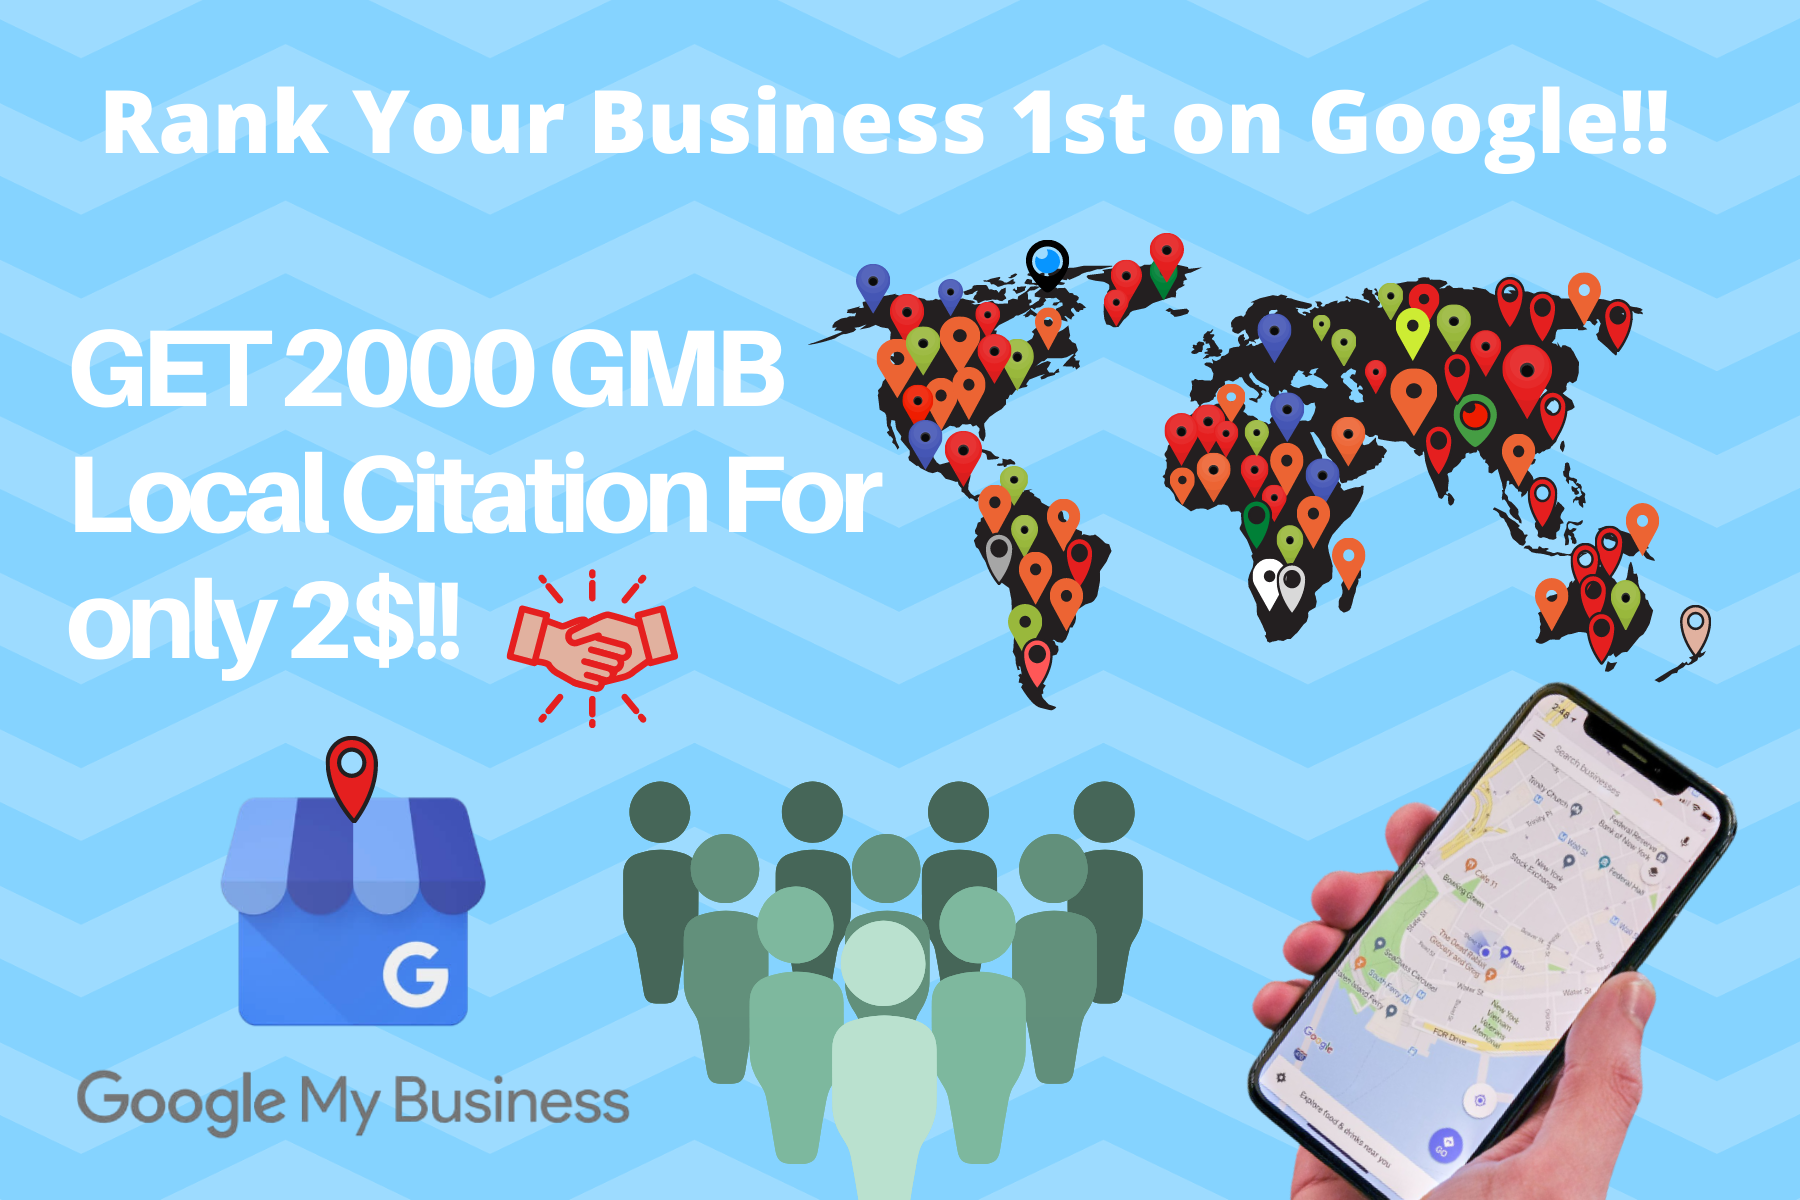 I will create 2000 google maps citations for GMB and local business ranking